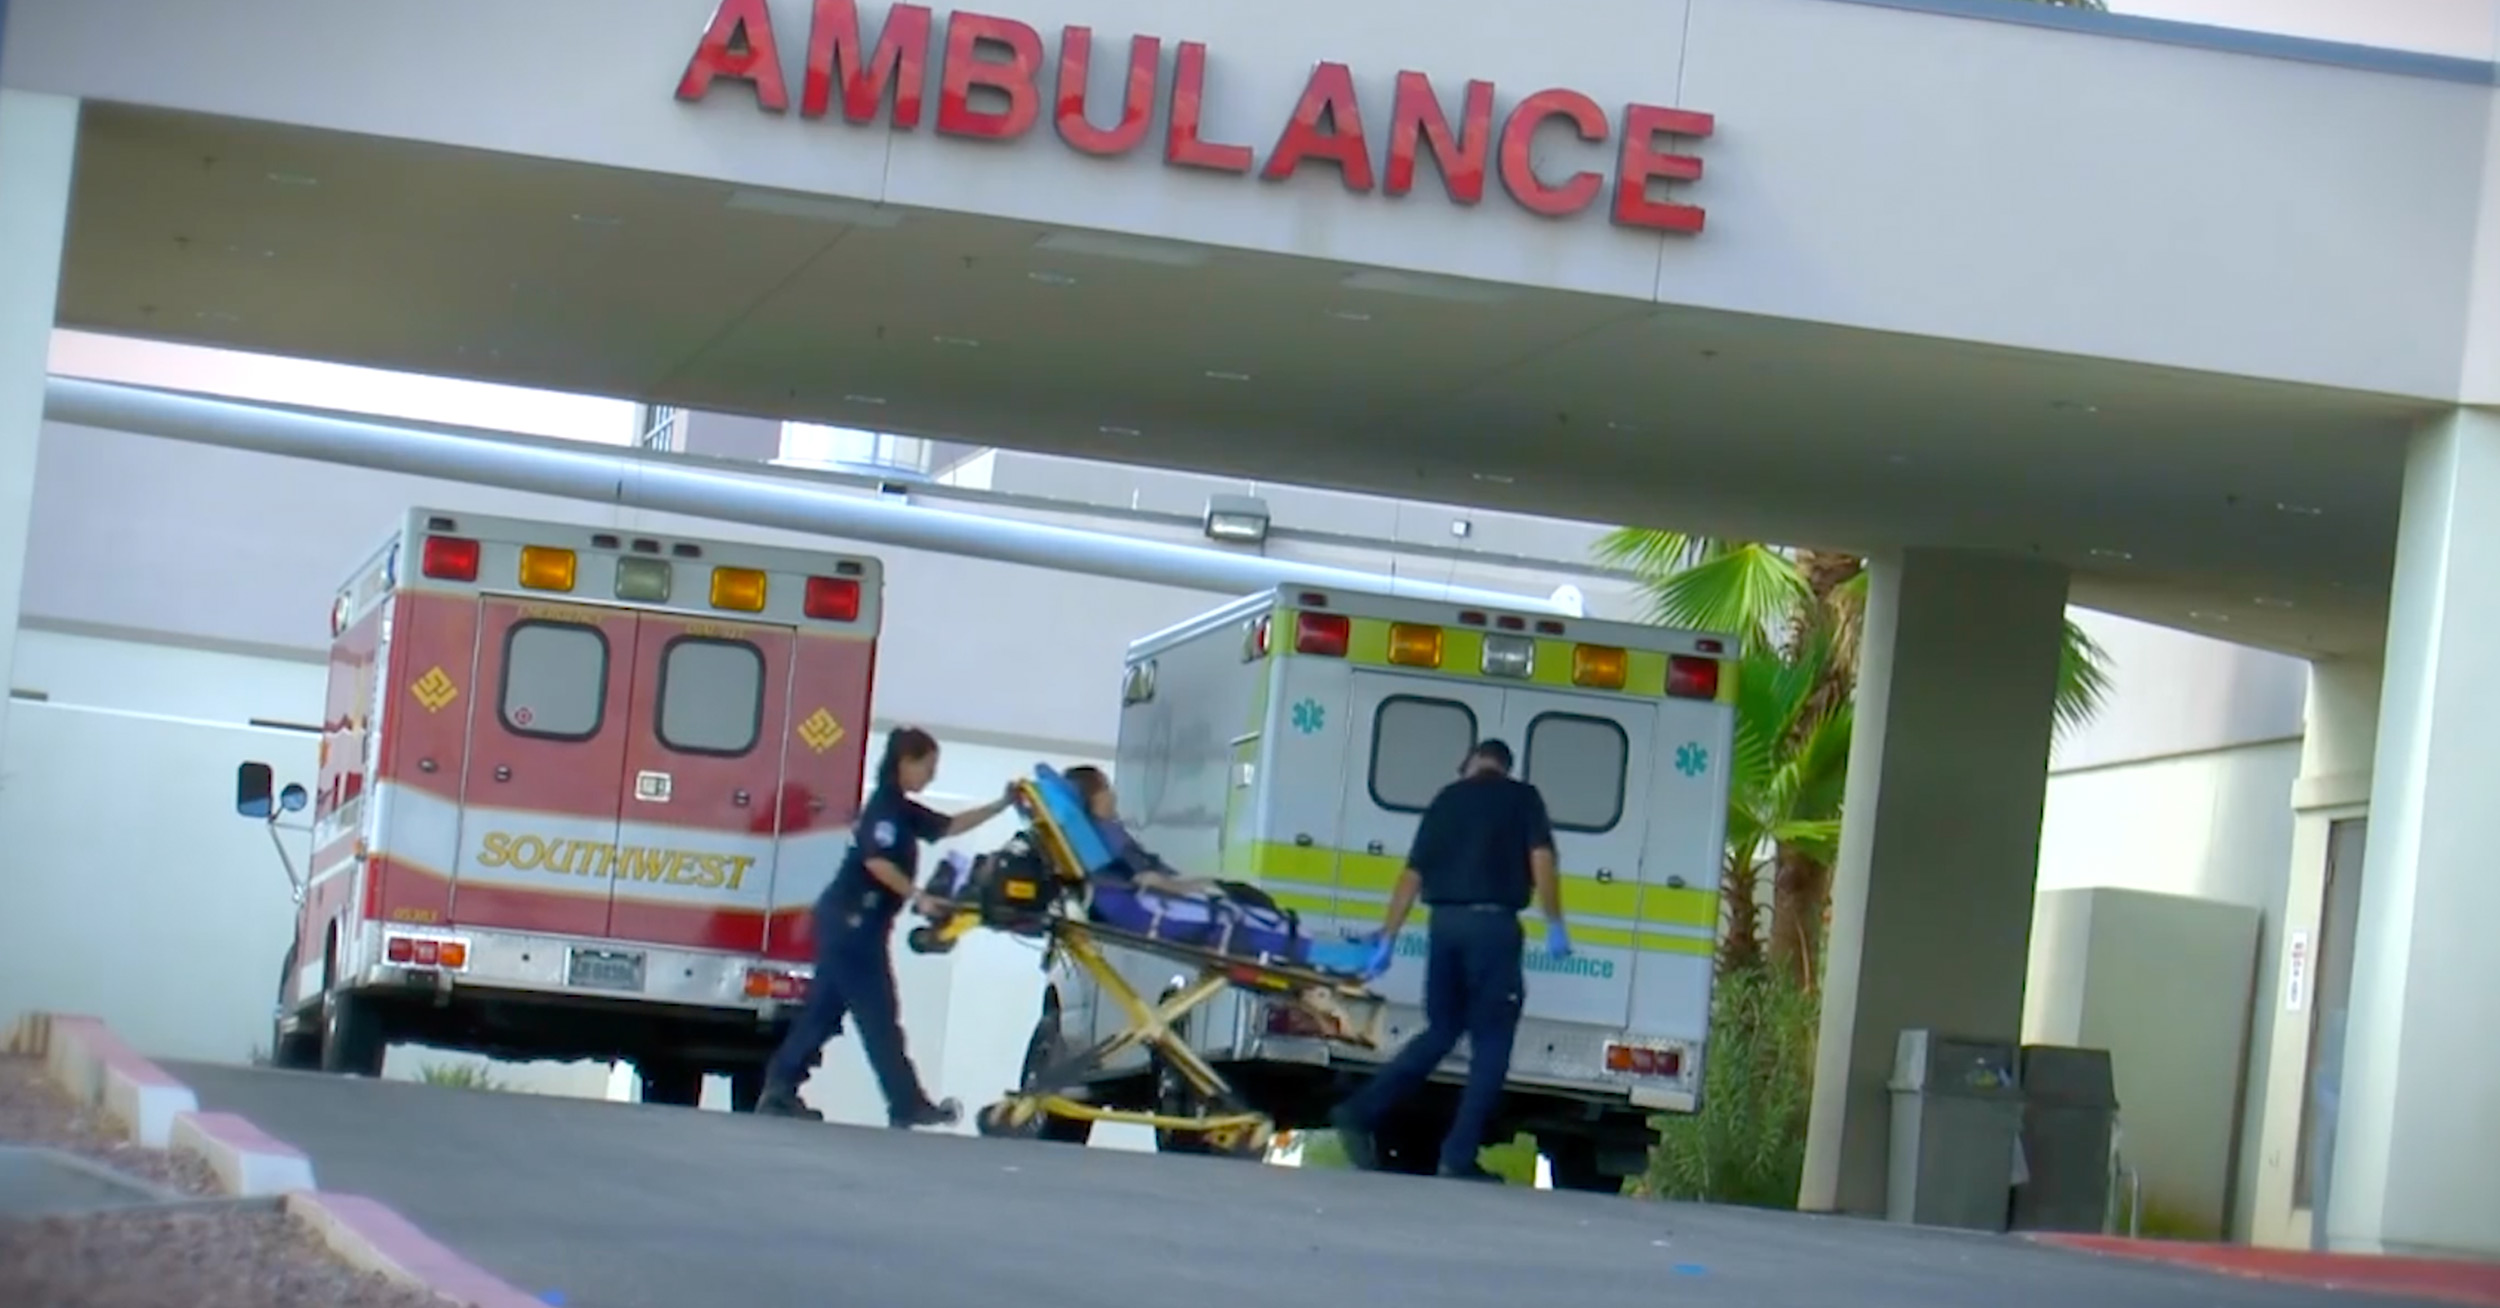 4 Ways EMS Billing Software Makes Ambulance Claims Processing More Efficient